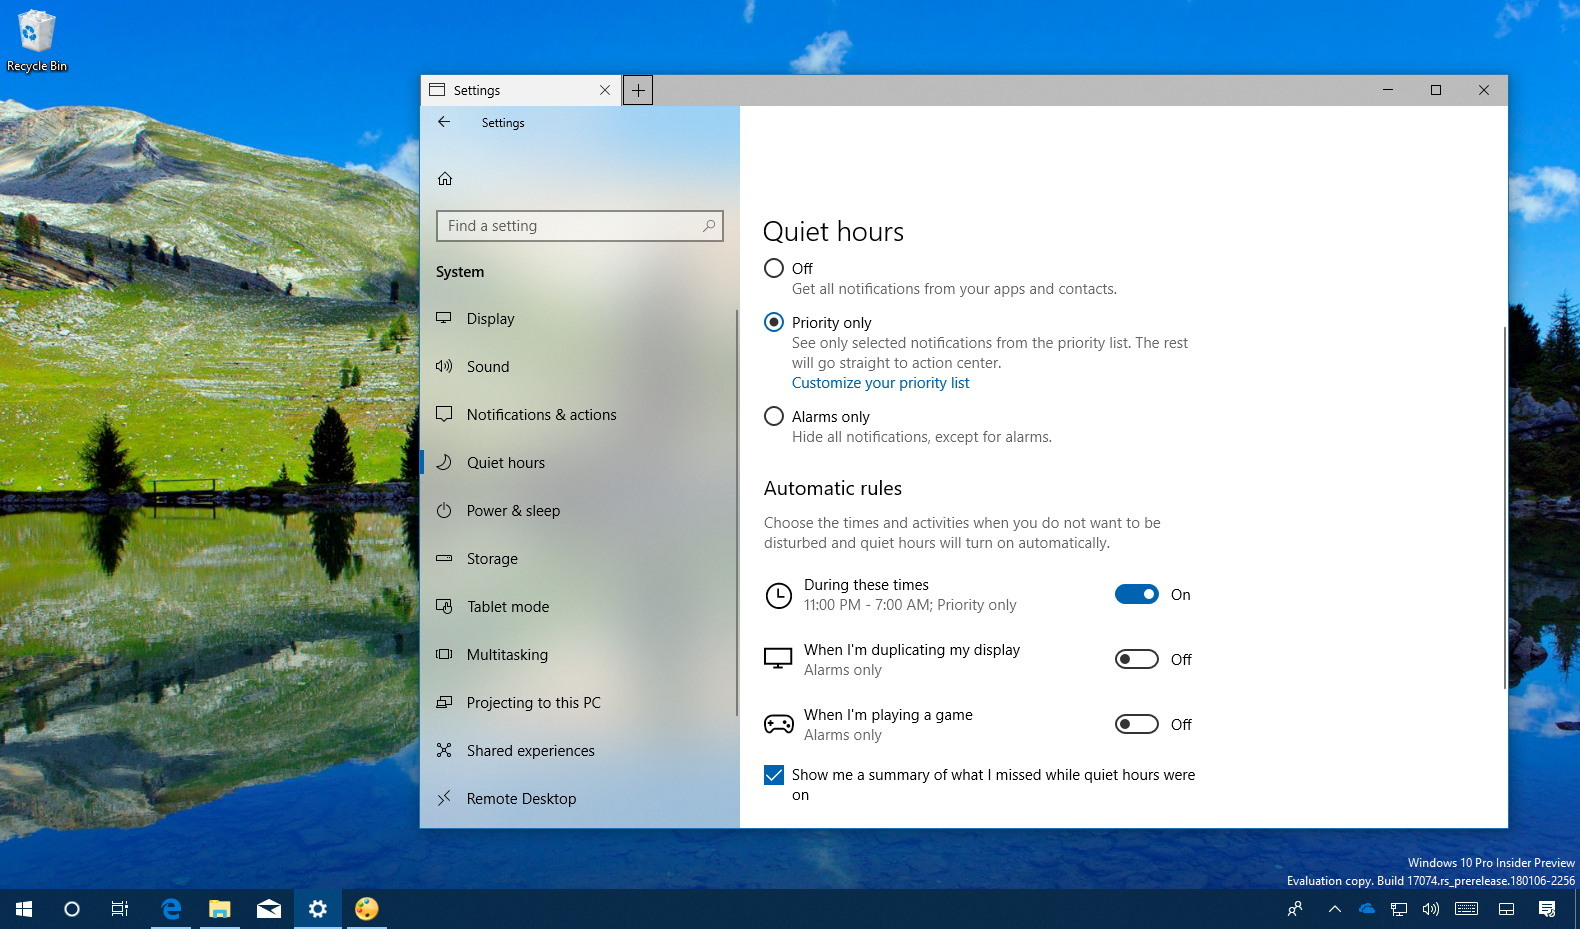 Quiet hours Automatic rules settings on Windows 10 (version 1803)